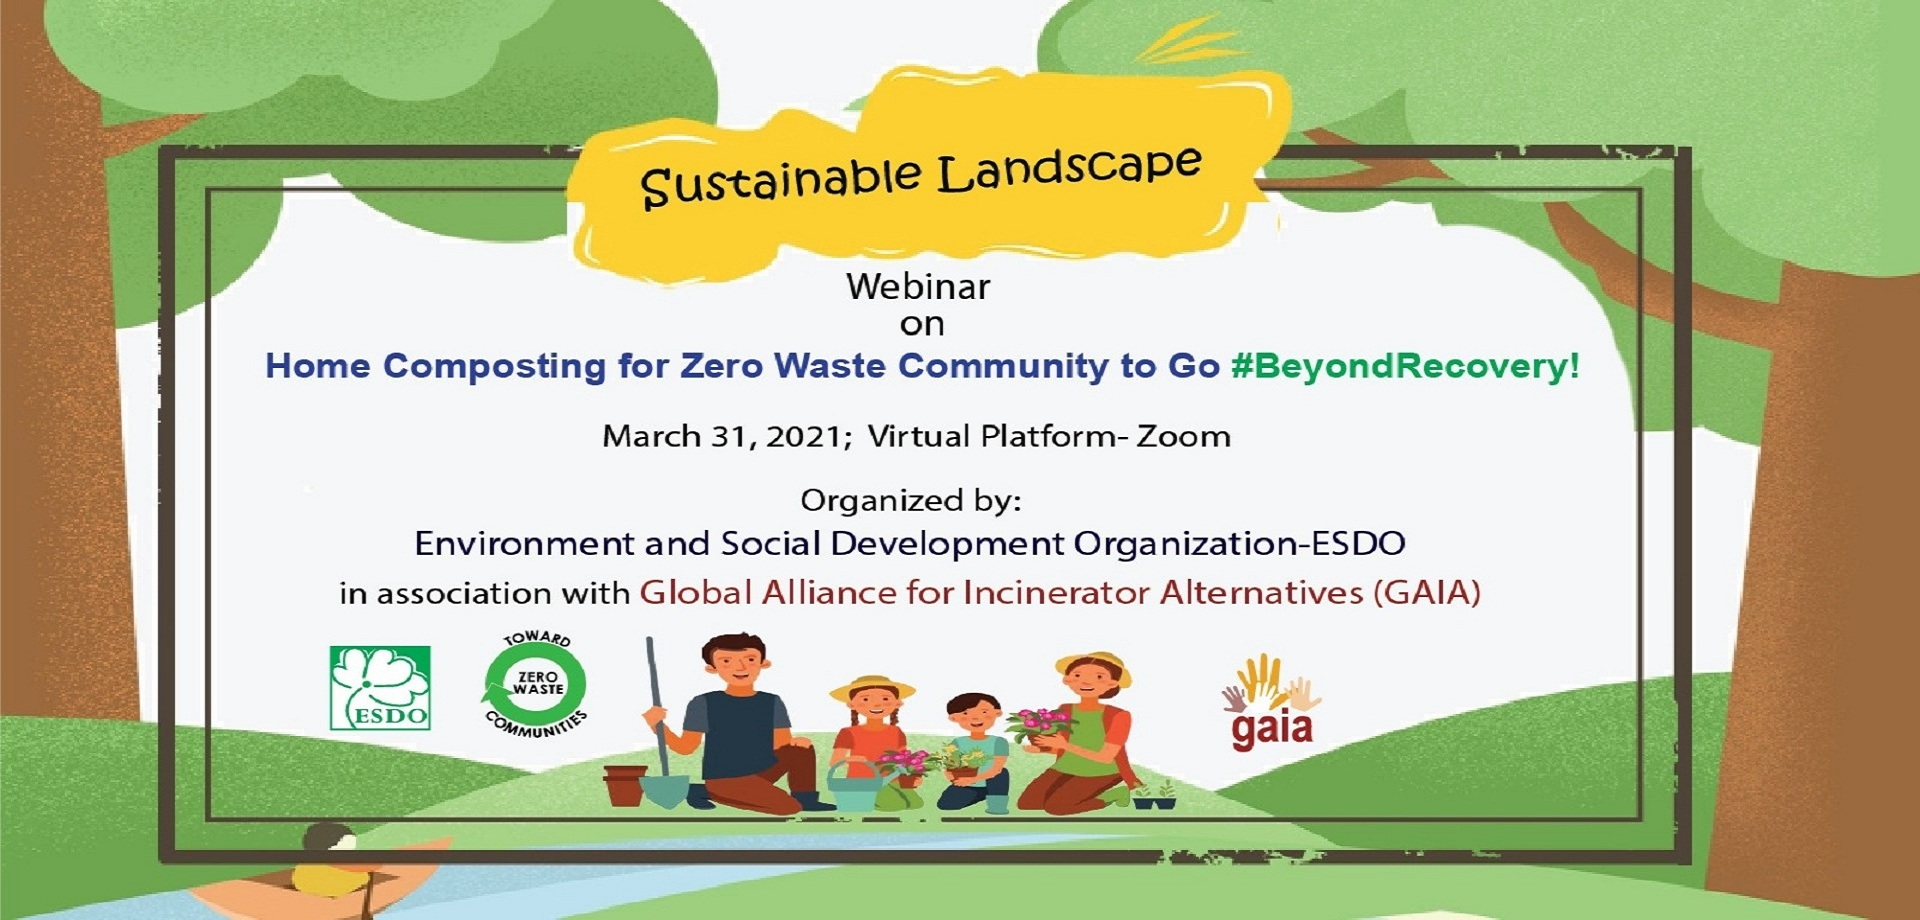 ESDO Celebrated Global Day of Action with GAIA To Promote Home Composting from Organic Waste